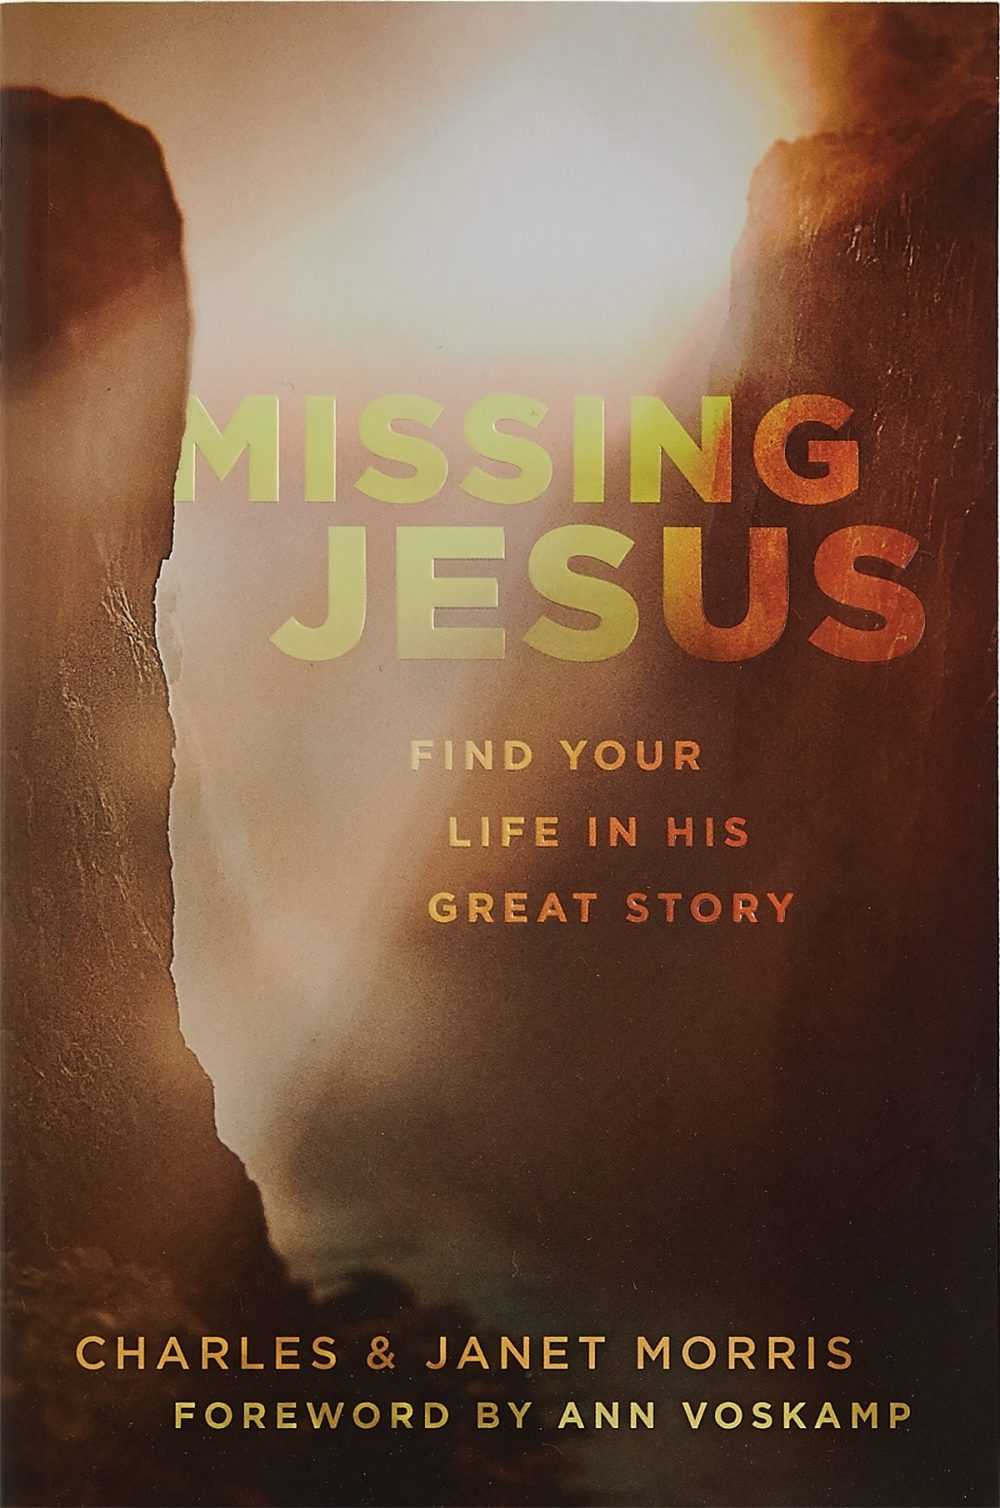 'Missing Jesus,' by Charles and Janet Morris, urges believers to put Christ at the center of their day-to-day lives.